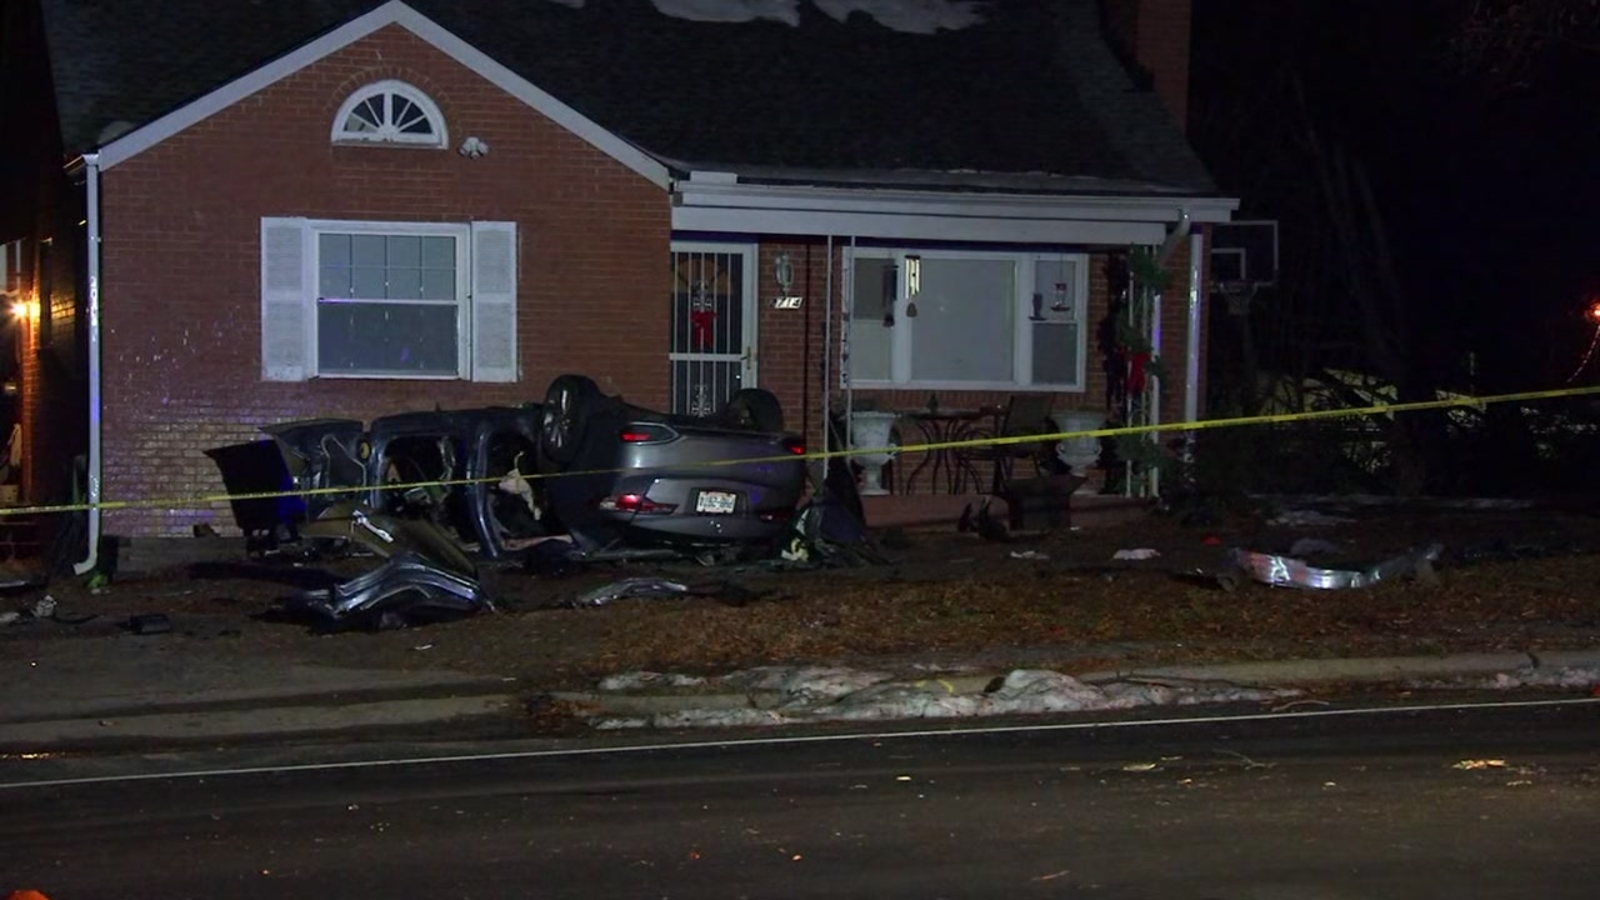 Acura Of Fayetteville >> Woman hurt after hitting tree, flipping car into yard of Durham home, police say - ABC11 Raleigh ...